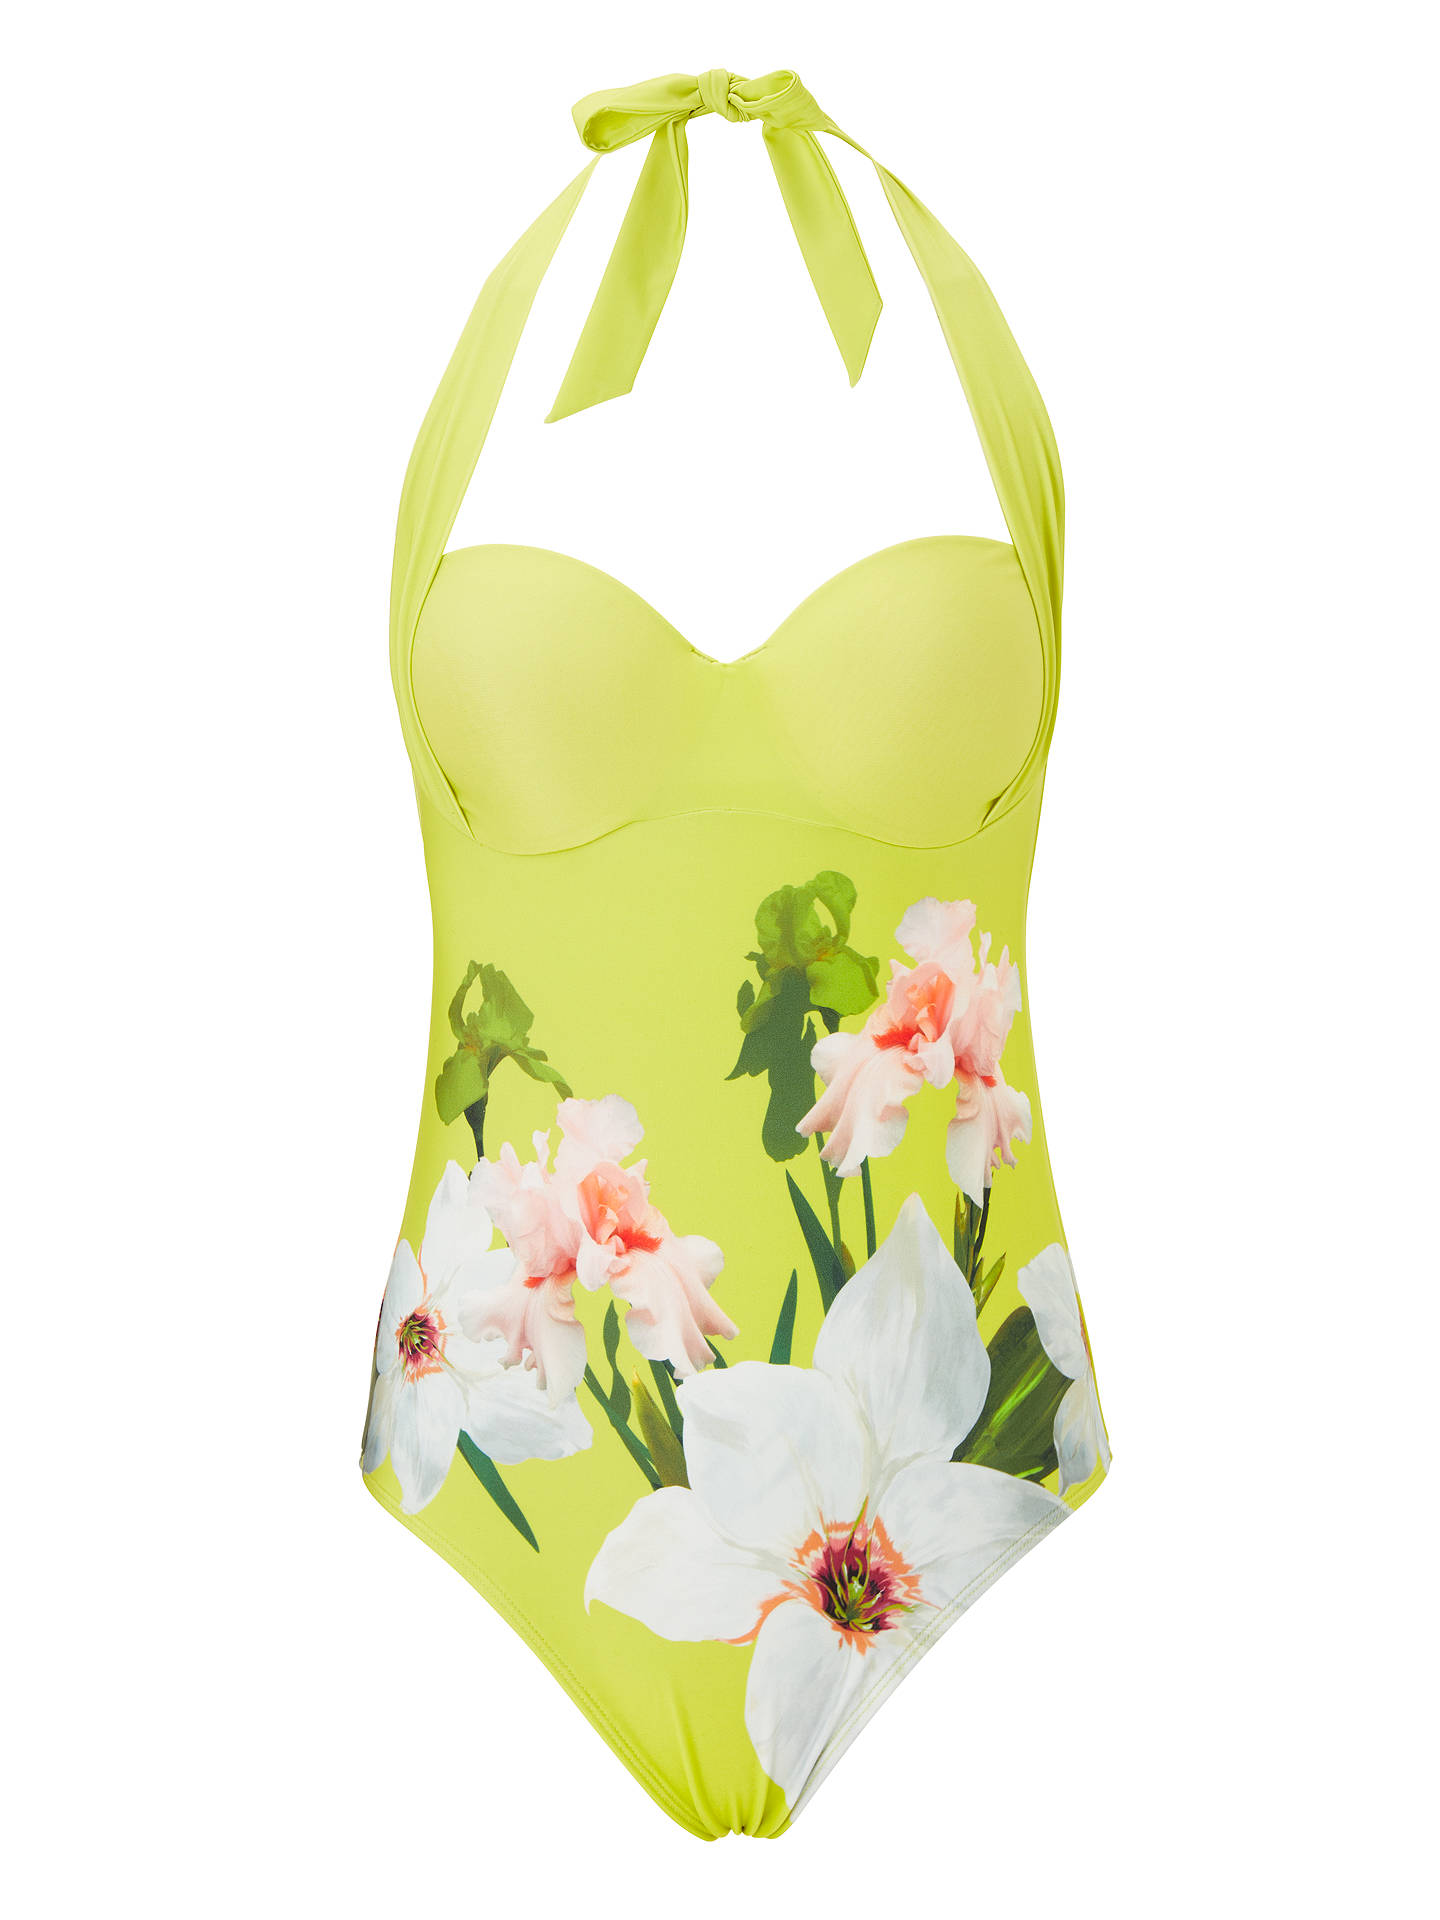 BuyTed Baker Tuela Chatsworth Bloom Halter Swimsuit, Green/Multi, 34A-B Online at johnlewis.com